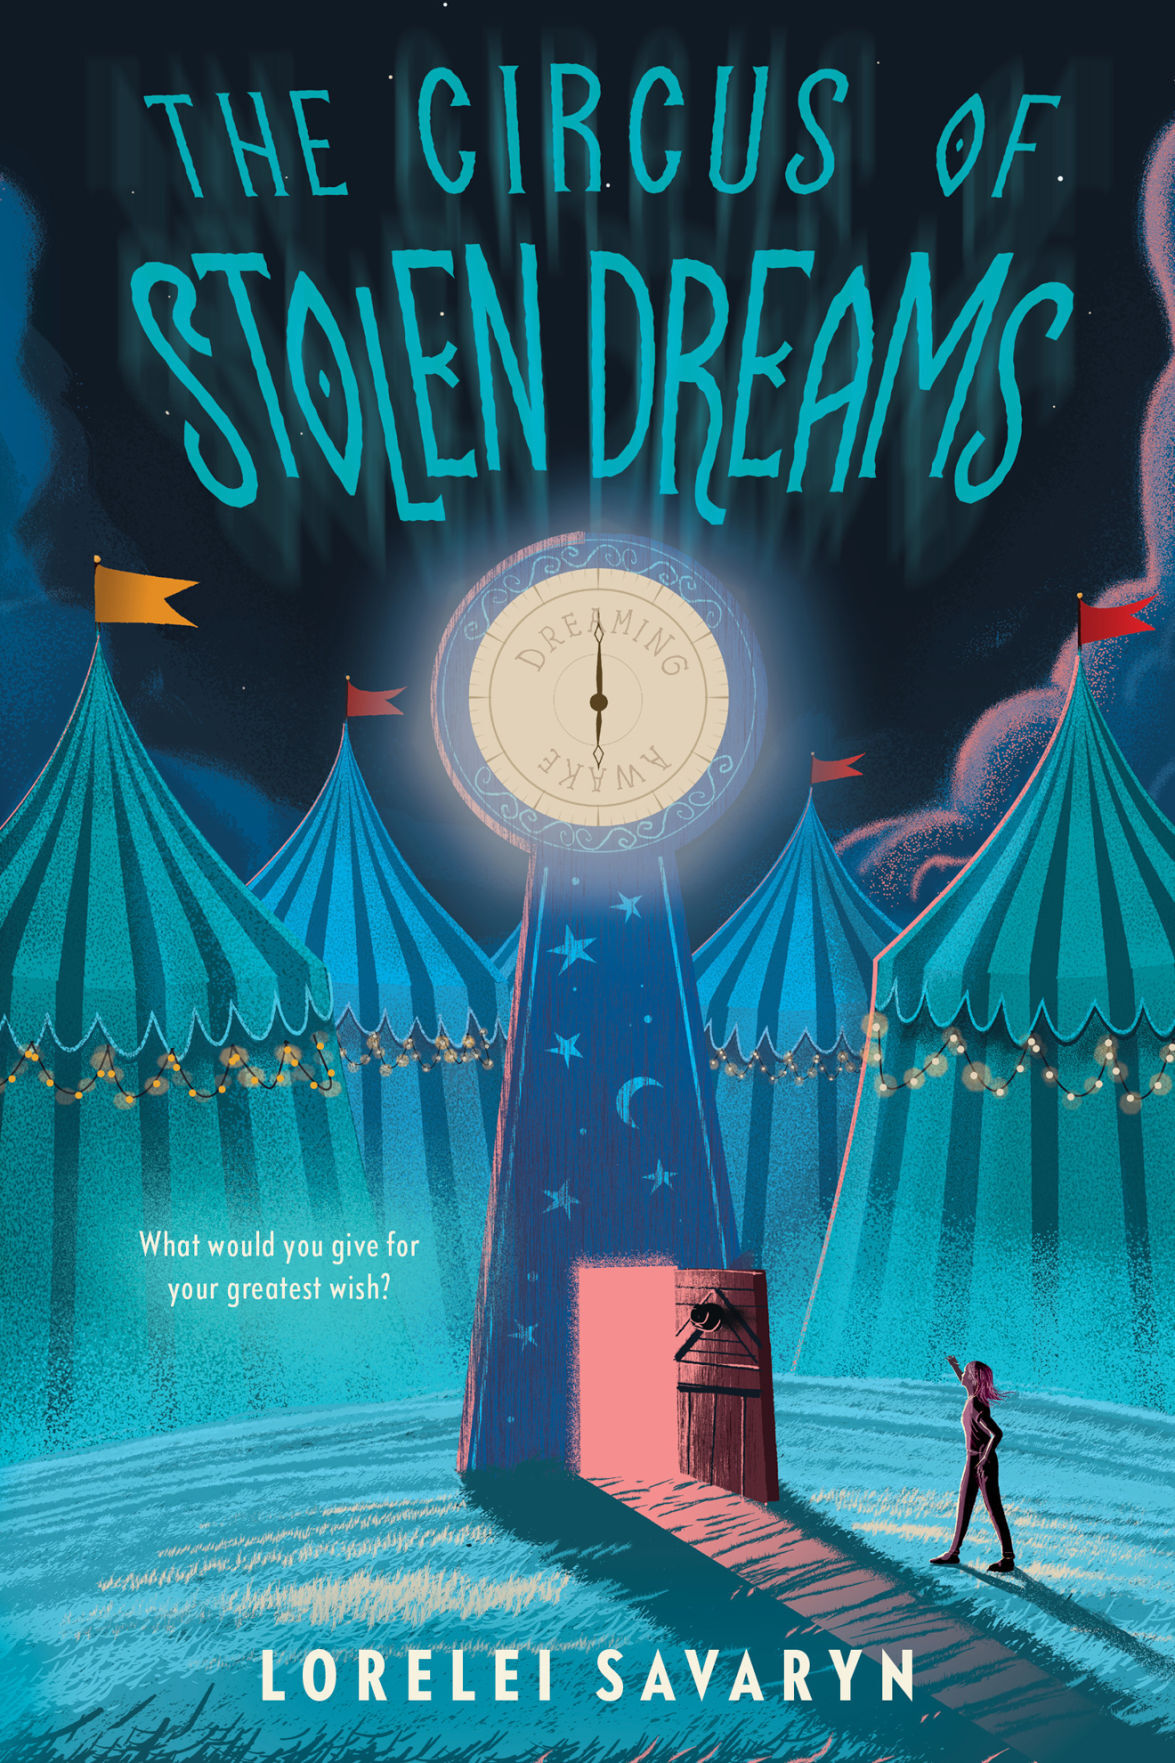 The Write Stuff Area Author S Dream Comes True With Debut